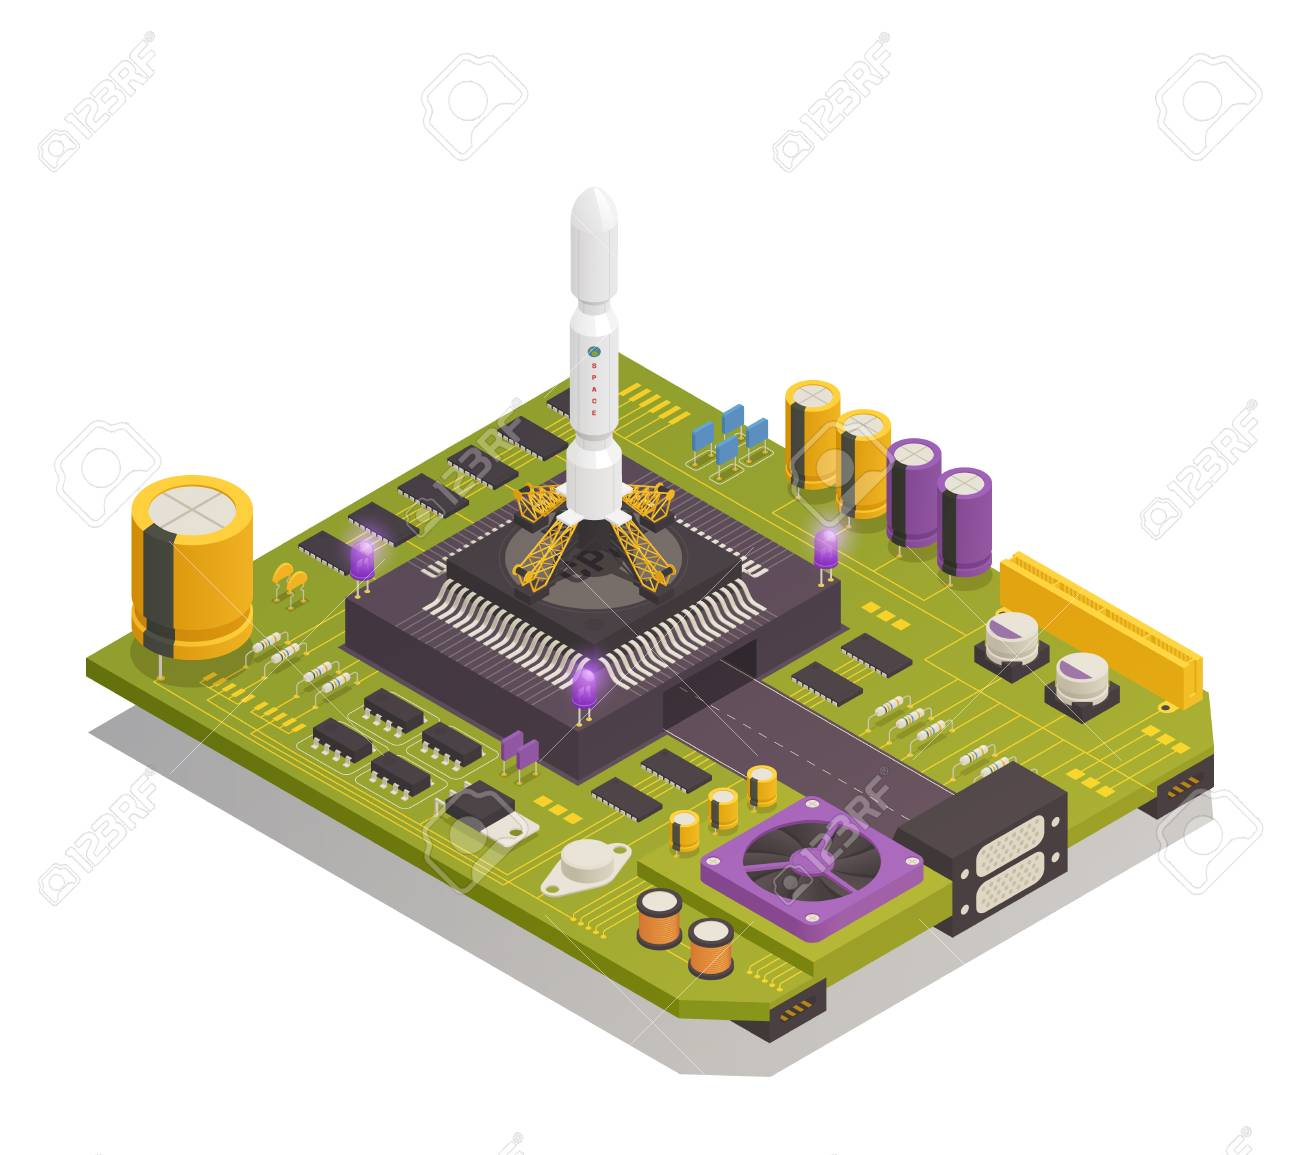 Semiconductor Electronic Components Assembled On Printed Circuit Completely Board As Space Rocket Launching Complex Isometric Composition